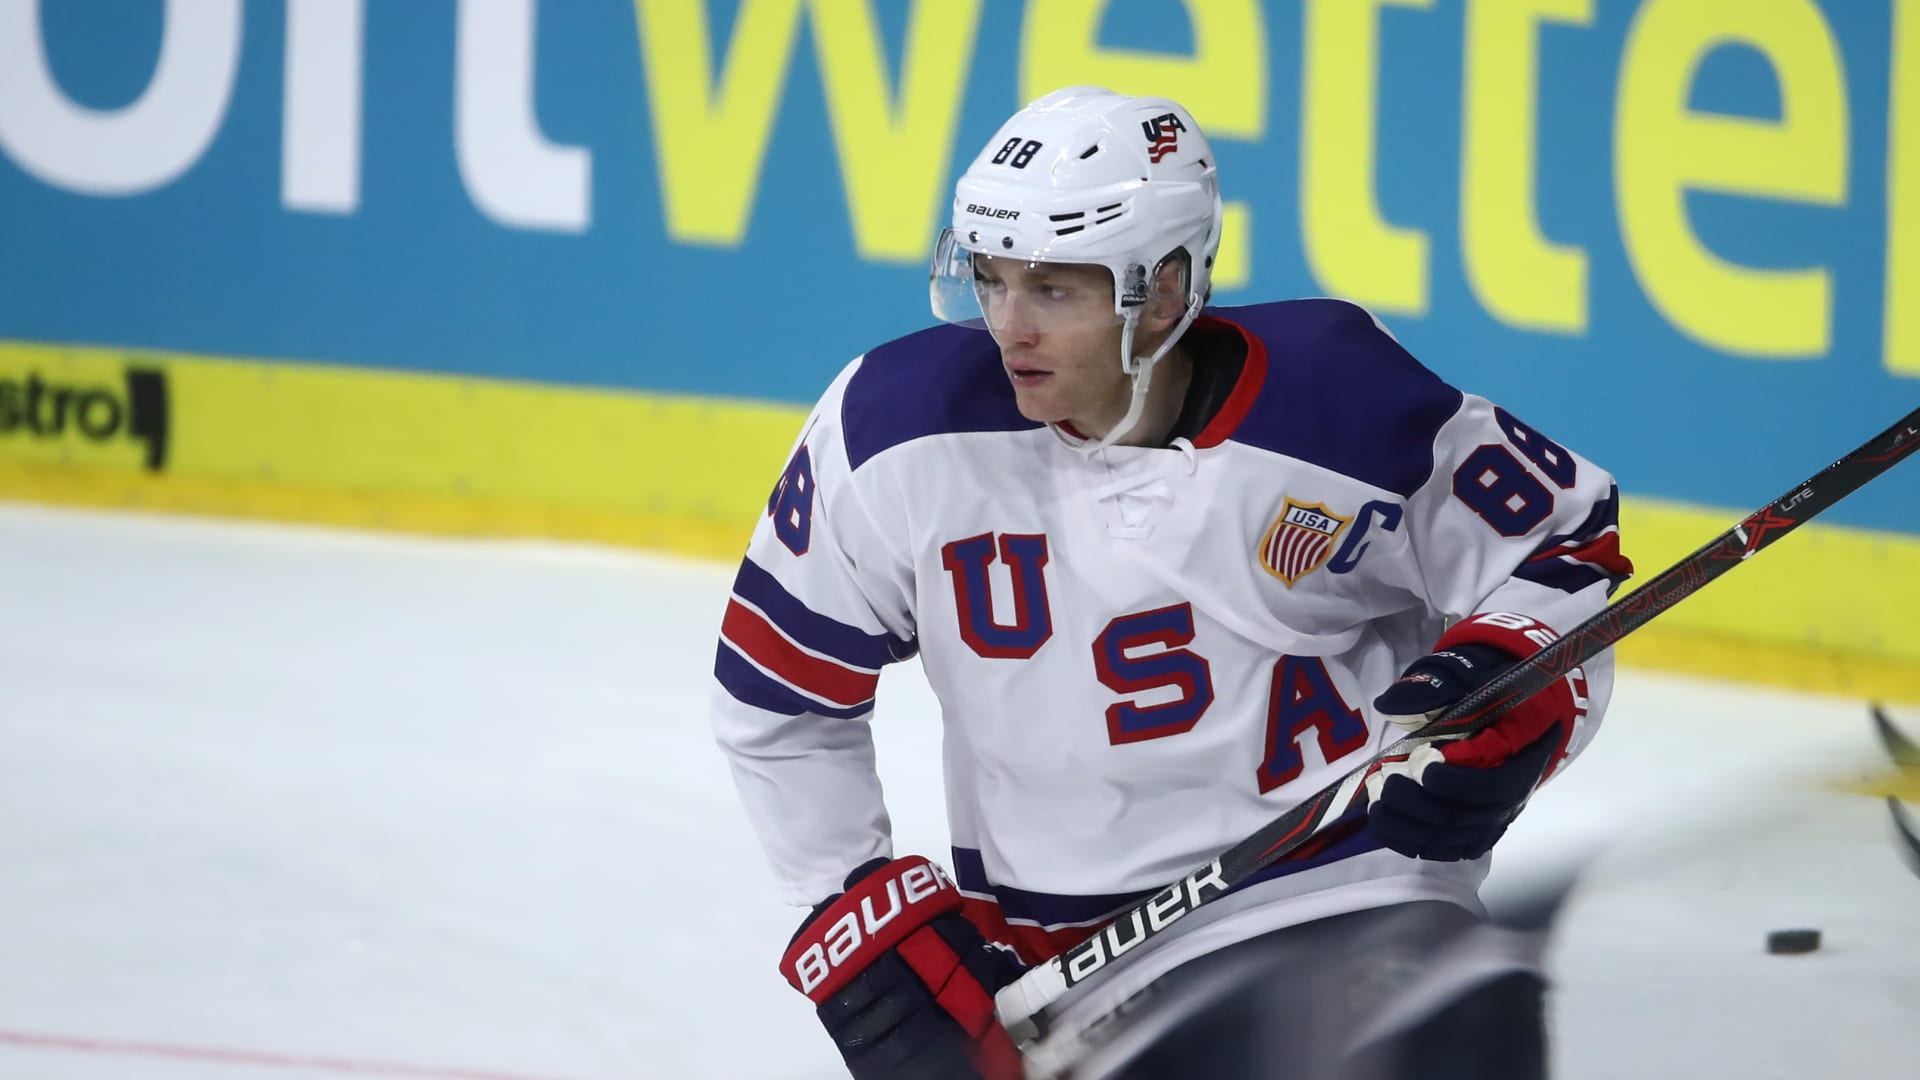 2019 Ice Hockey World Championships Preview Format Schedule